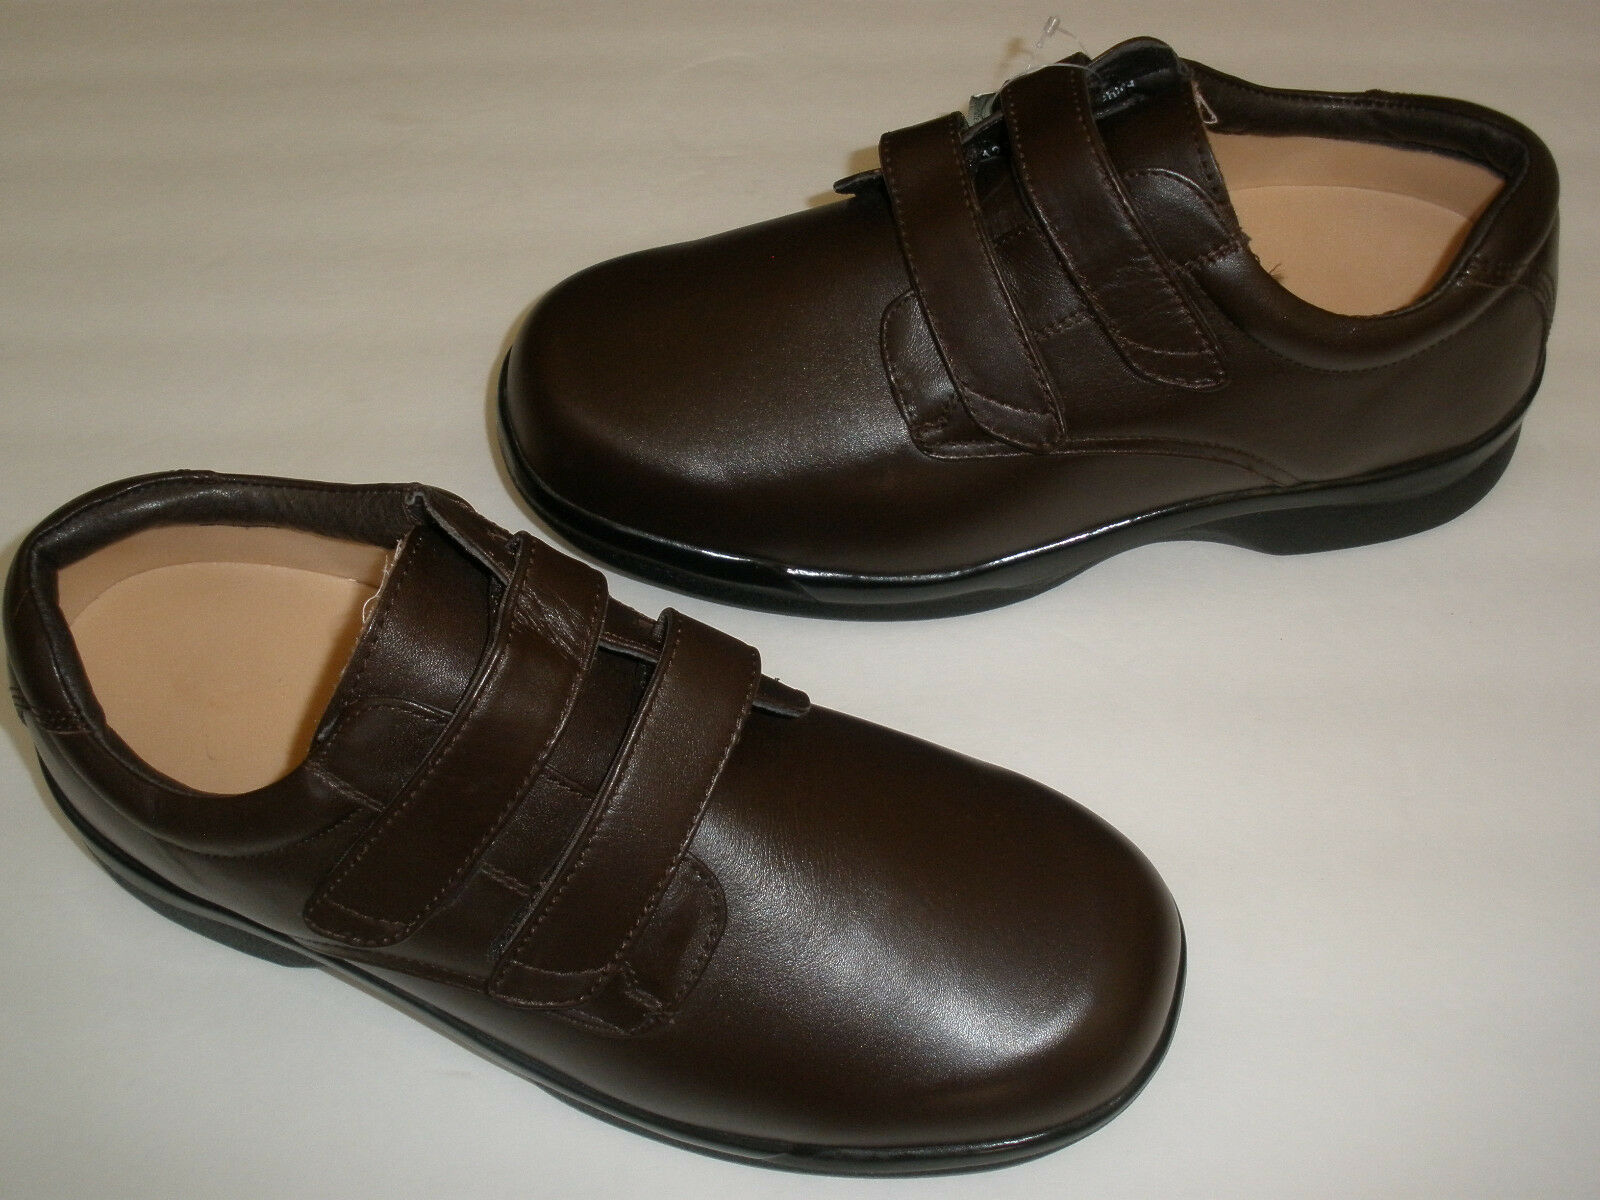 APEX HEALTH & WELLNESS LEATHER CONFORM ORTHOTIC LOAFERS US 12.5  HOT UNIQUE